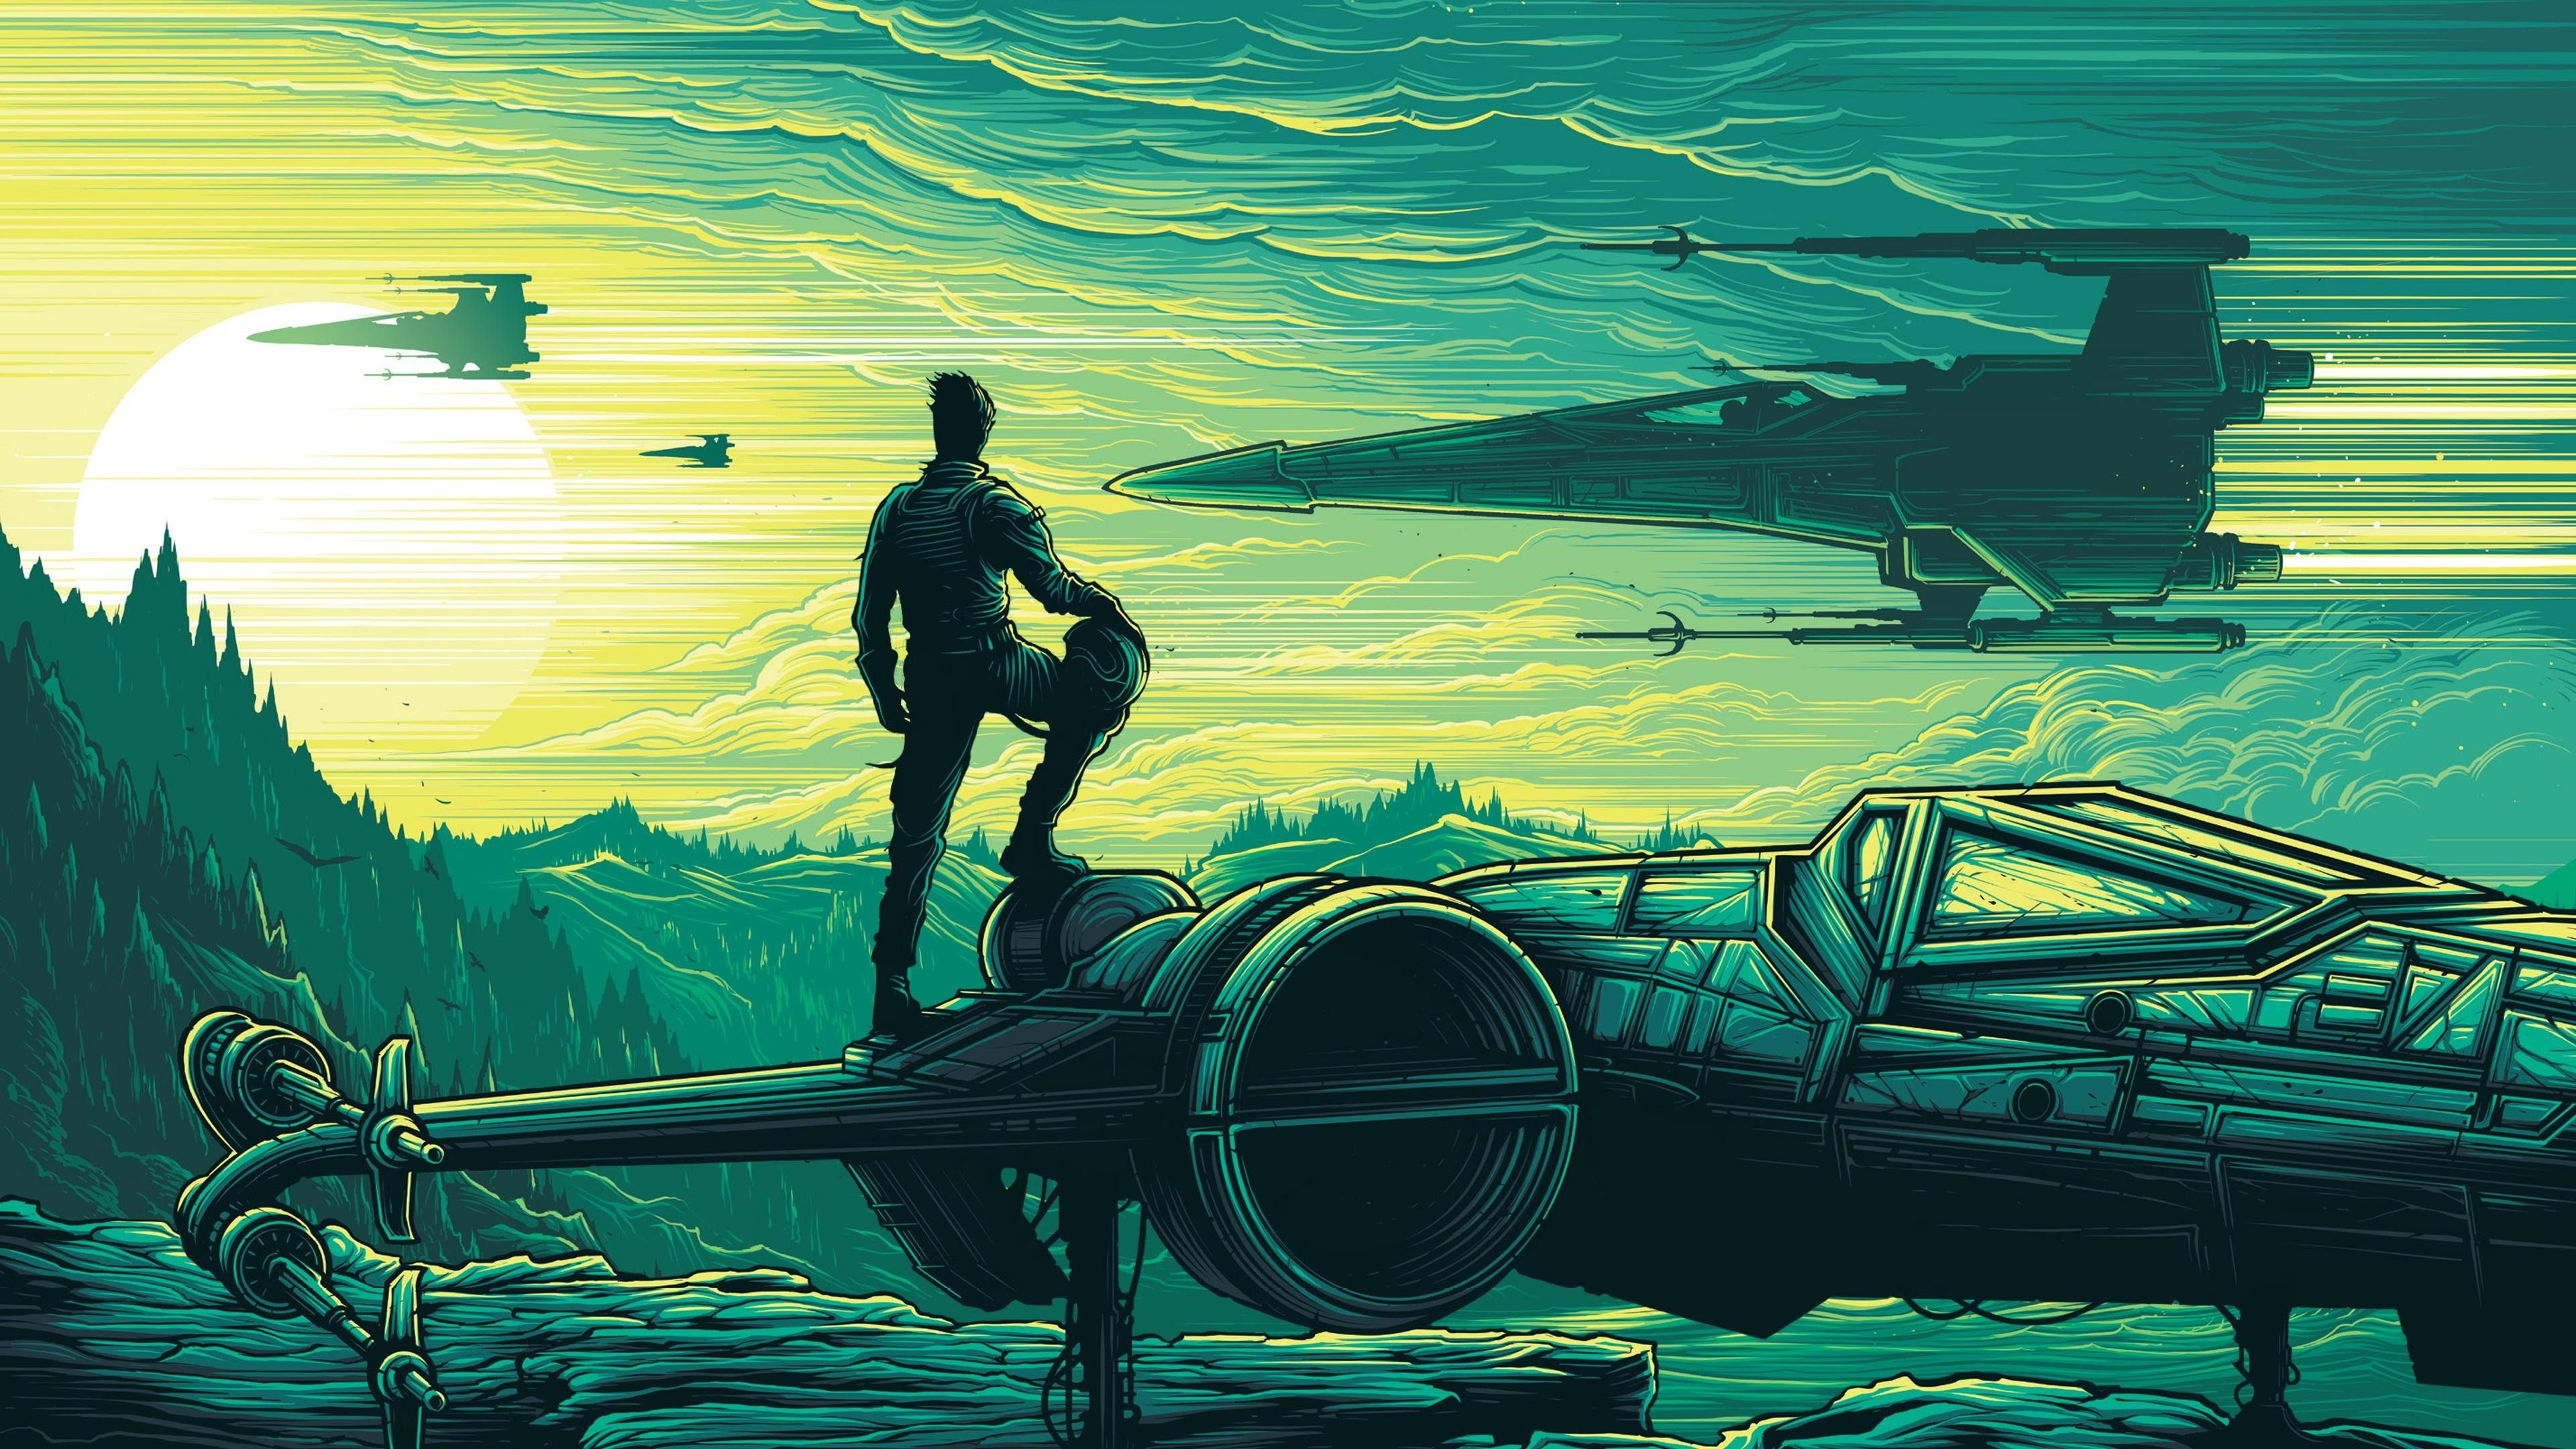 Star Wars Episode Vii The Force Awakens Star Wars Dan Mumford Wallpaper Star Wars Wallpaper Wallpaper Dan Mumford